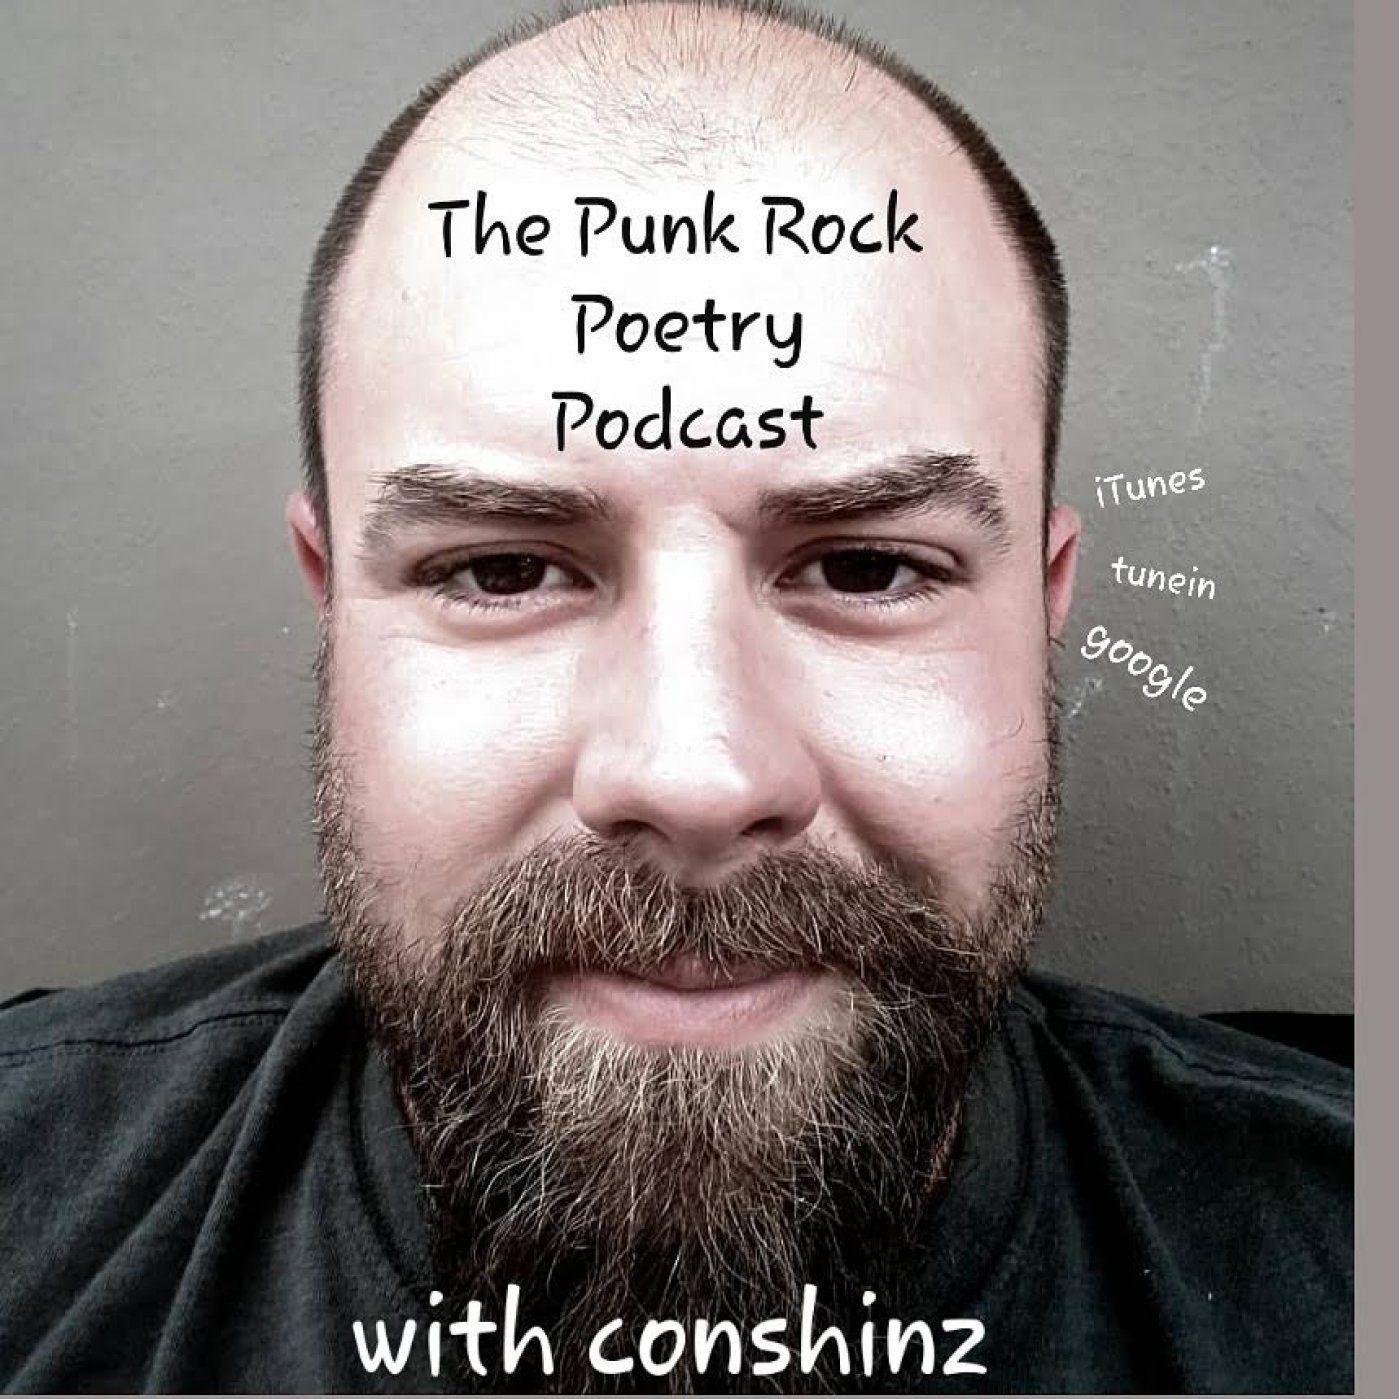 The Punk Rock Poetry Podcast - September 7th 2019